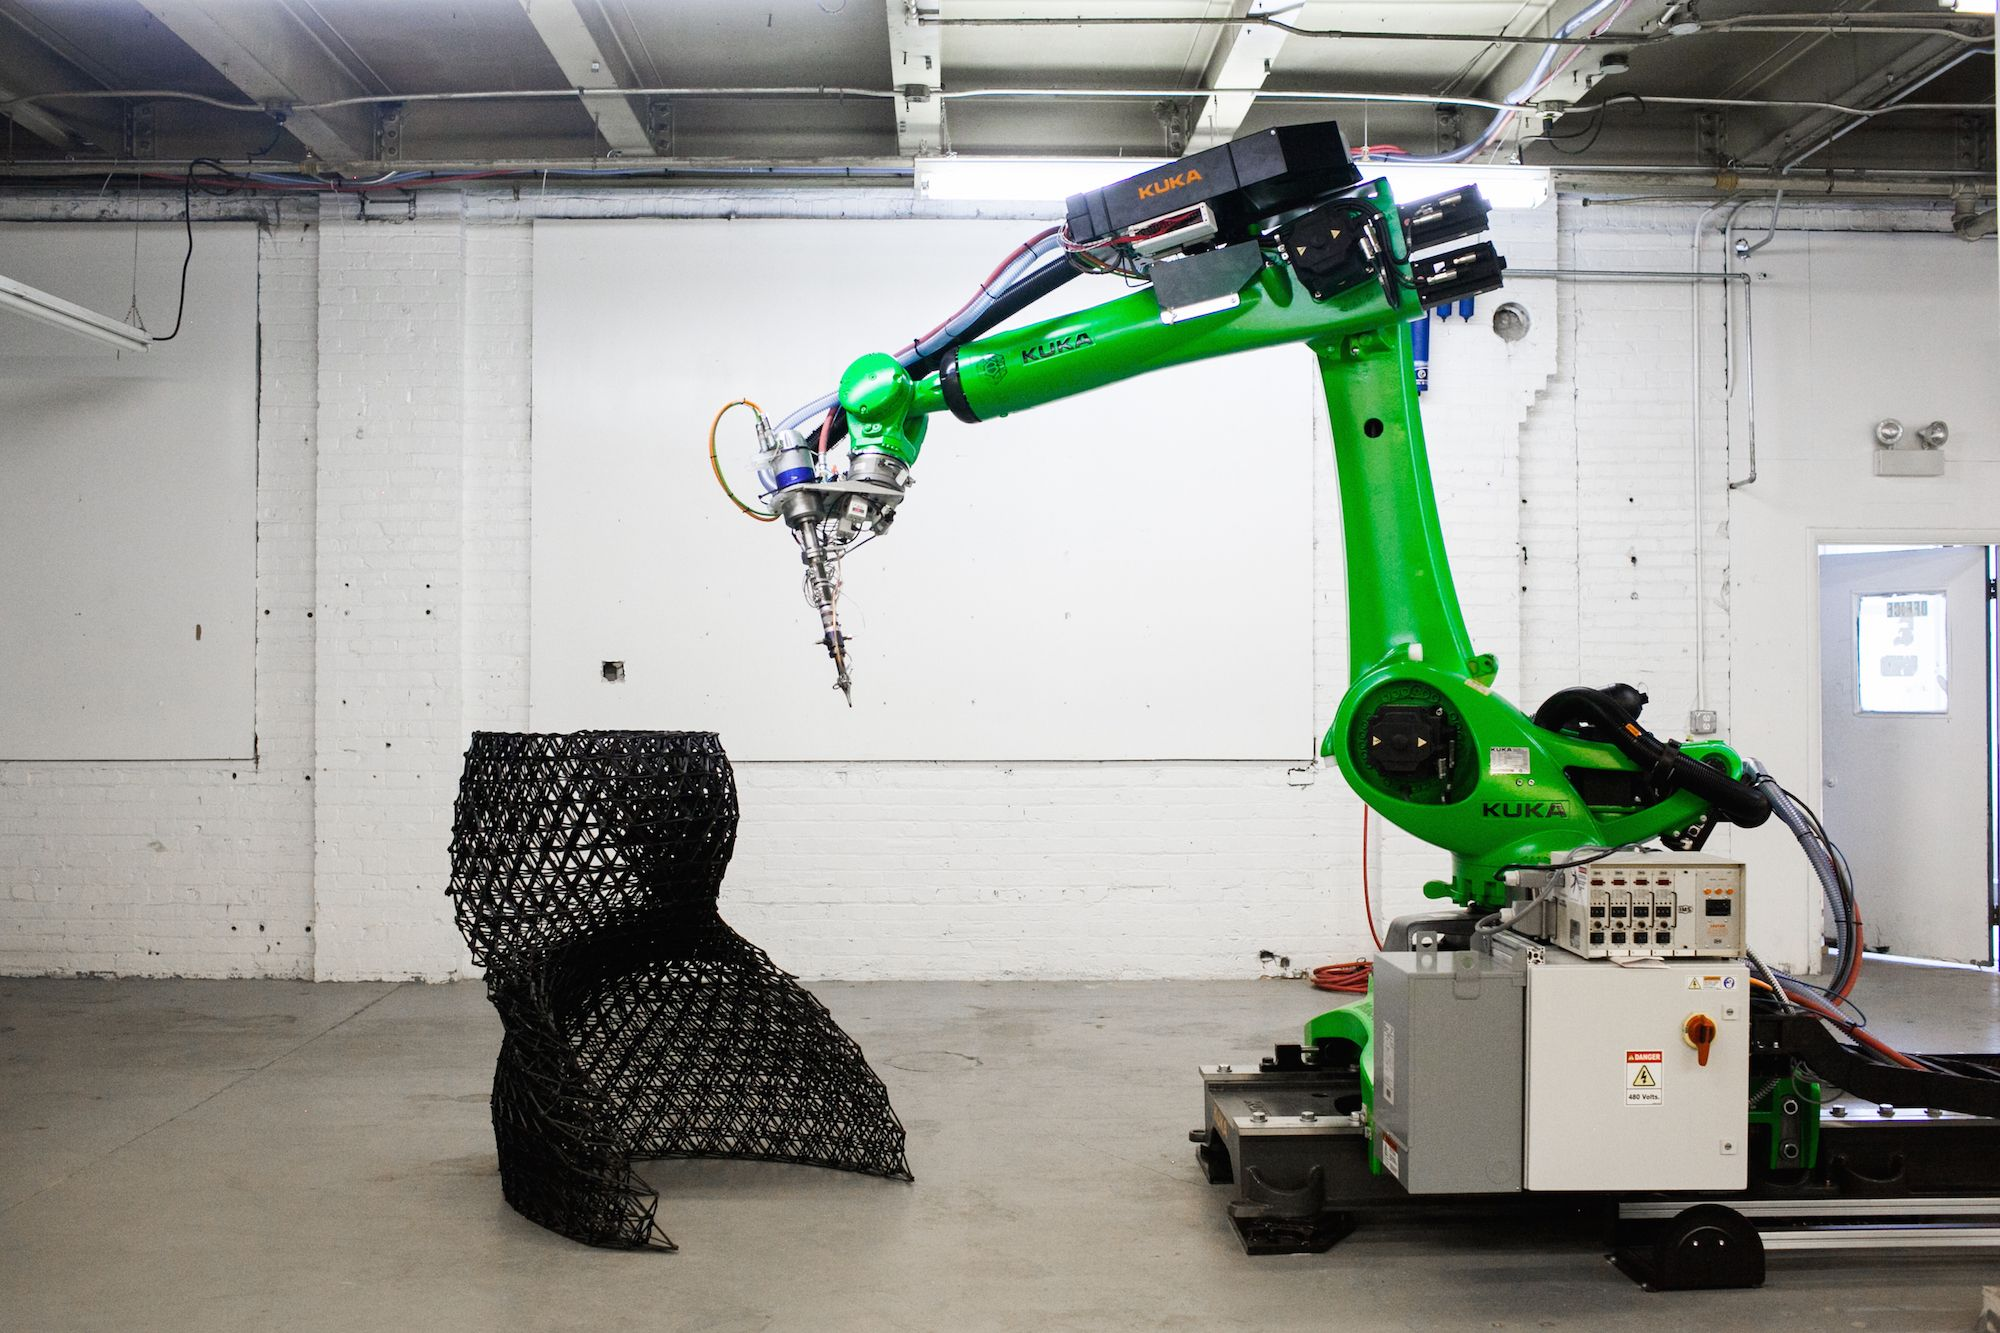 Branch Technology 3d Prints Building Walls With World S Largest Freeform 3d Printer Launches 3d Printed Home Competition 3dprint Com The Voice Of 3d Print 3d Printed House 3d Printing